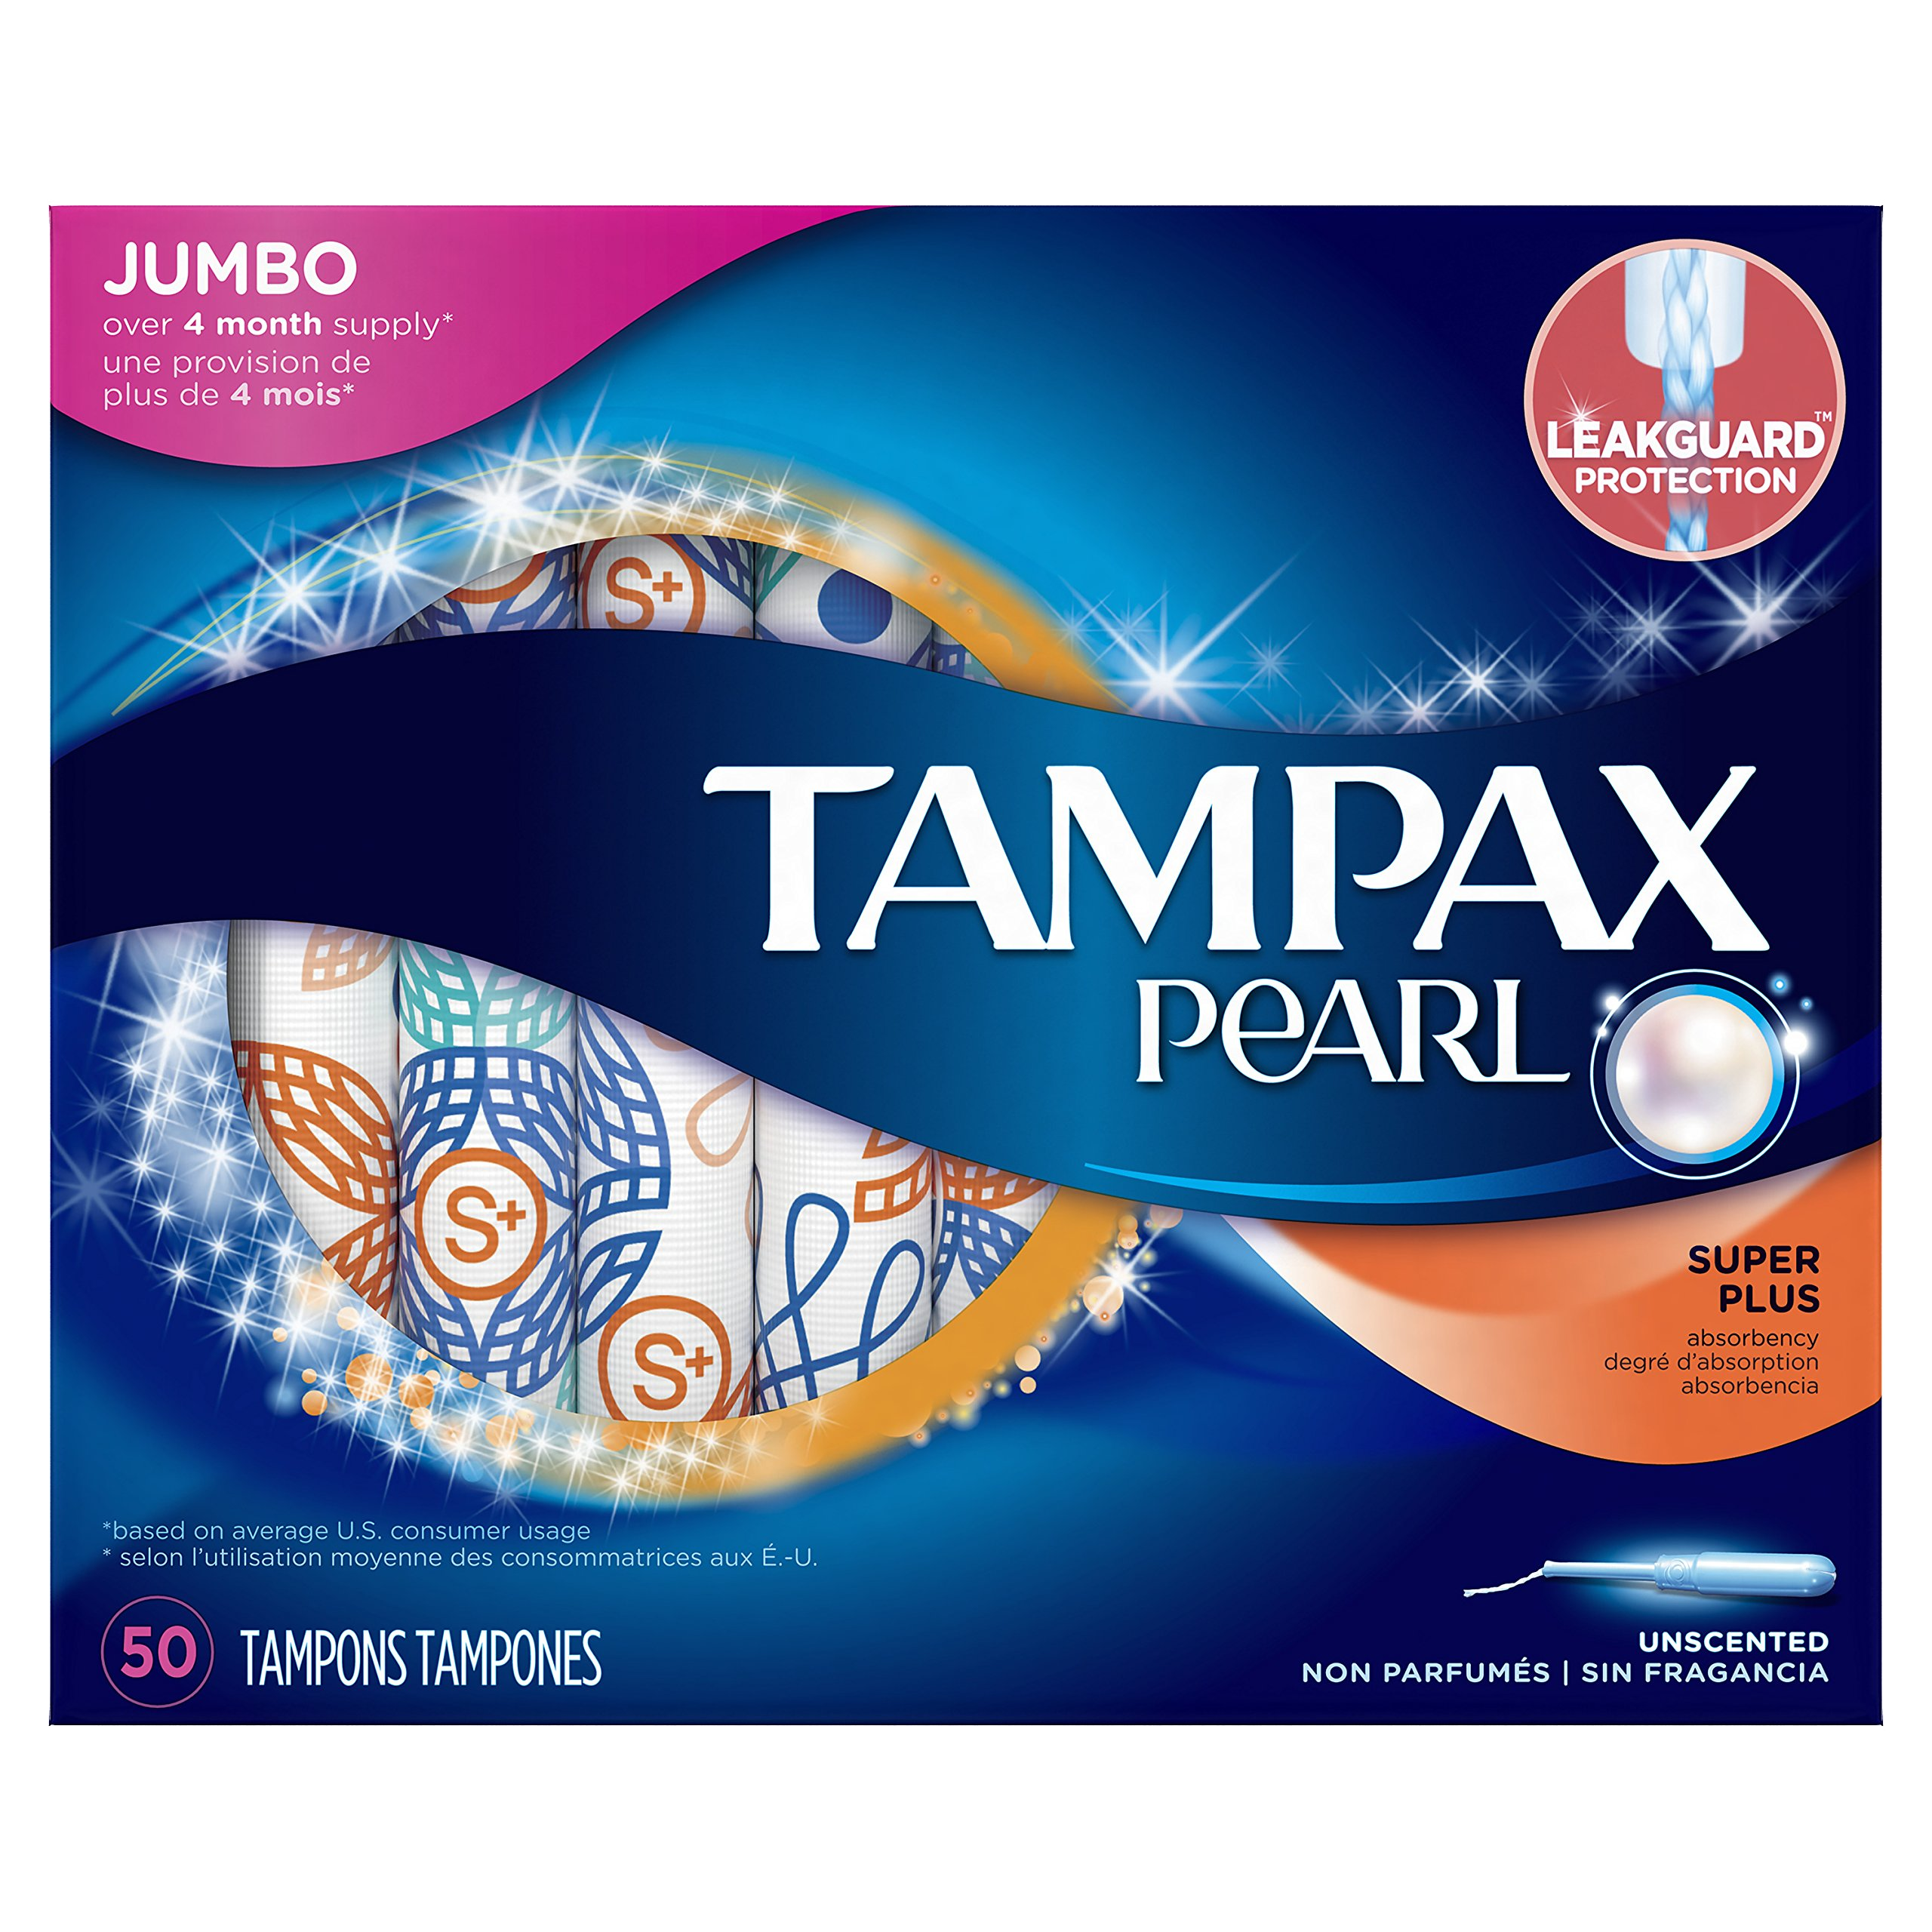 Tampax Pearl Plastic Applicator Tampons, Super Plus Absorbency, Unscented, 50 Count - Pack of 6 (300 Total Count)